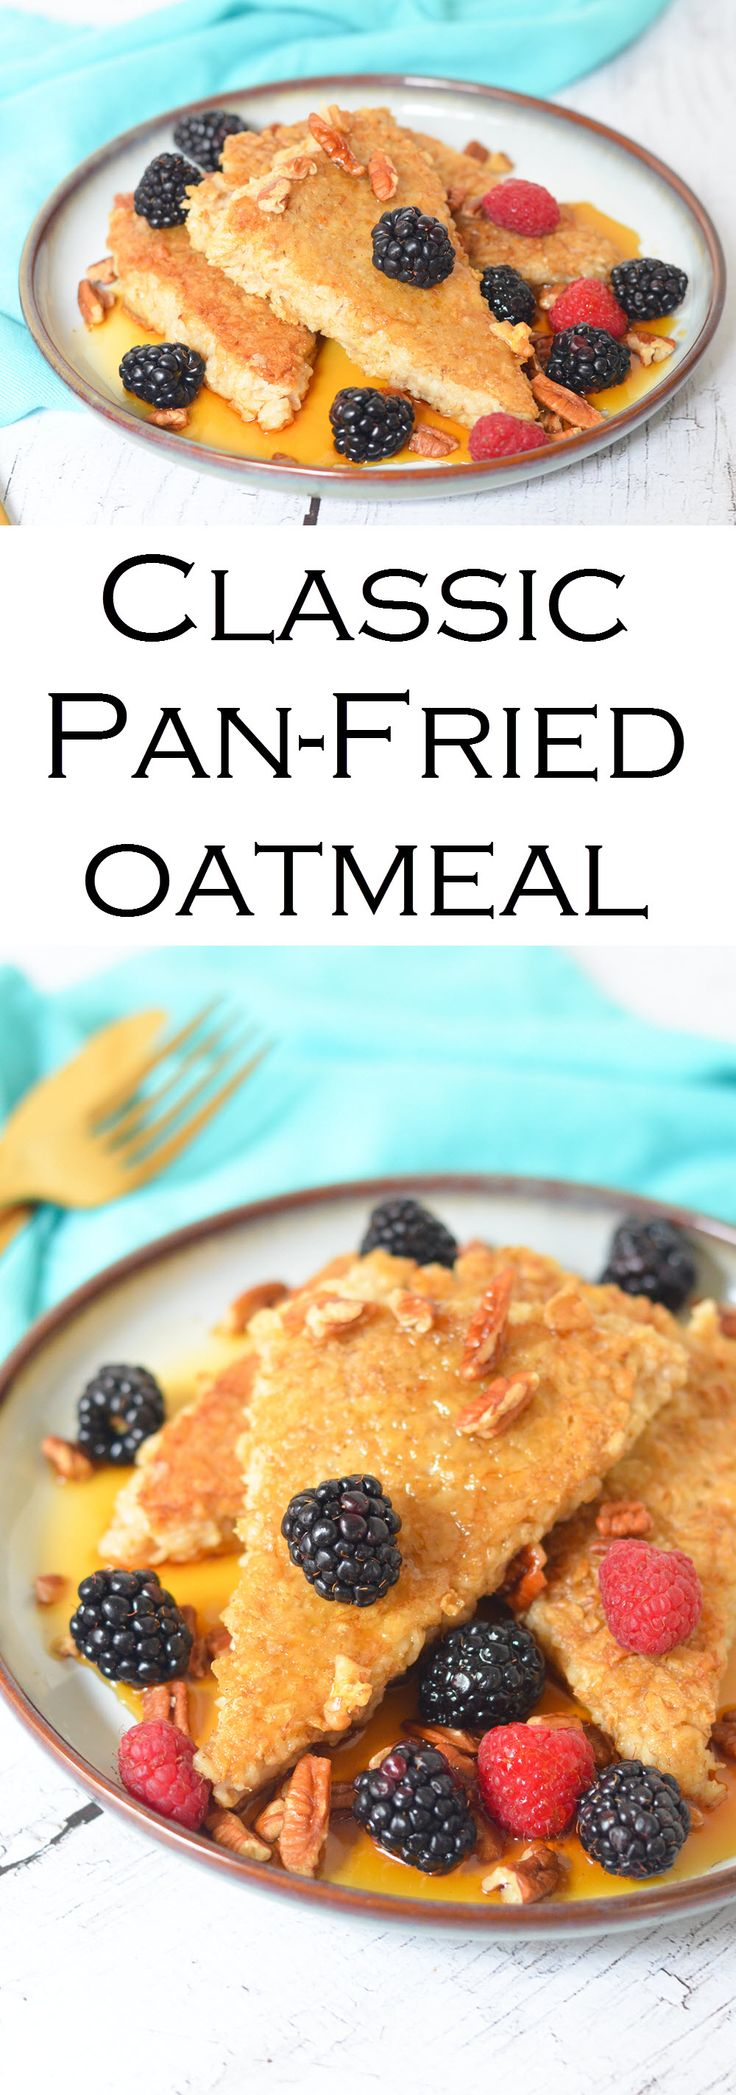 Enjoy this classic homemade pan-fried oatmeal. Use leftover oatmeal in this delicious spin on breakfast sure to make every heart healthy + happy!